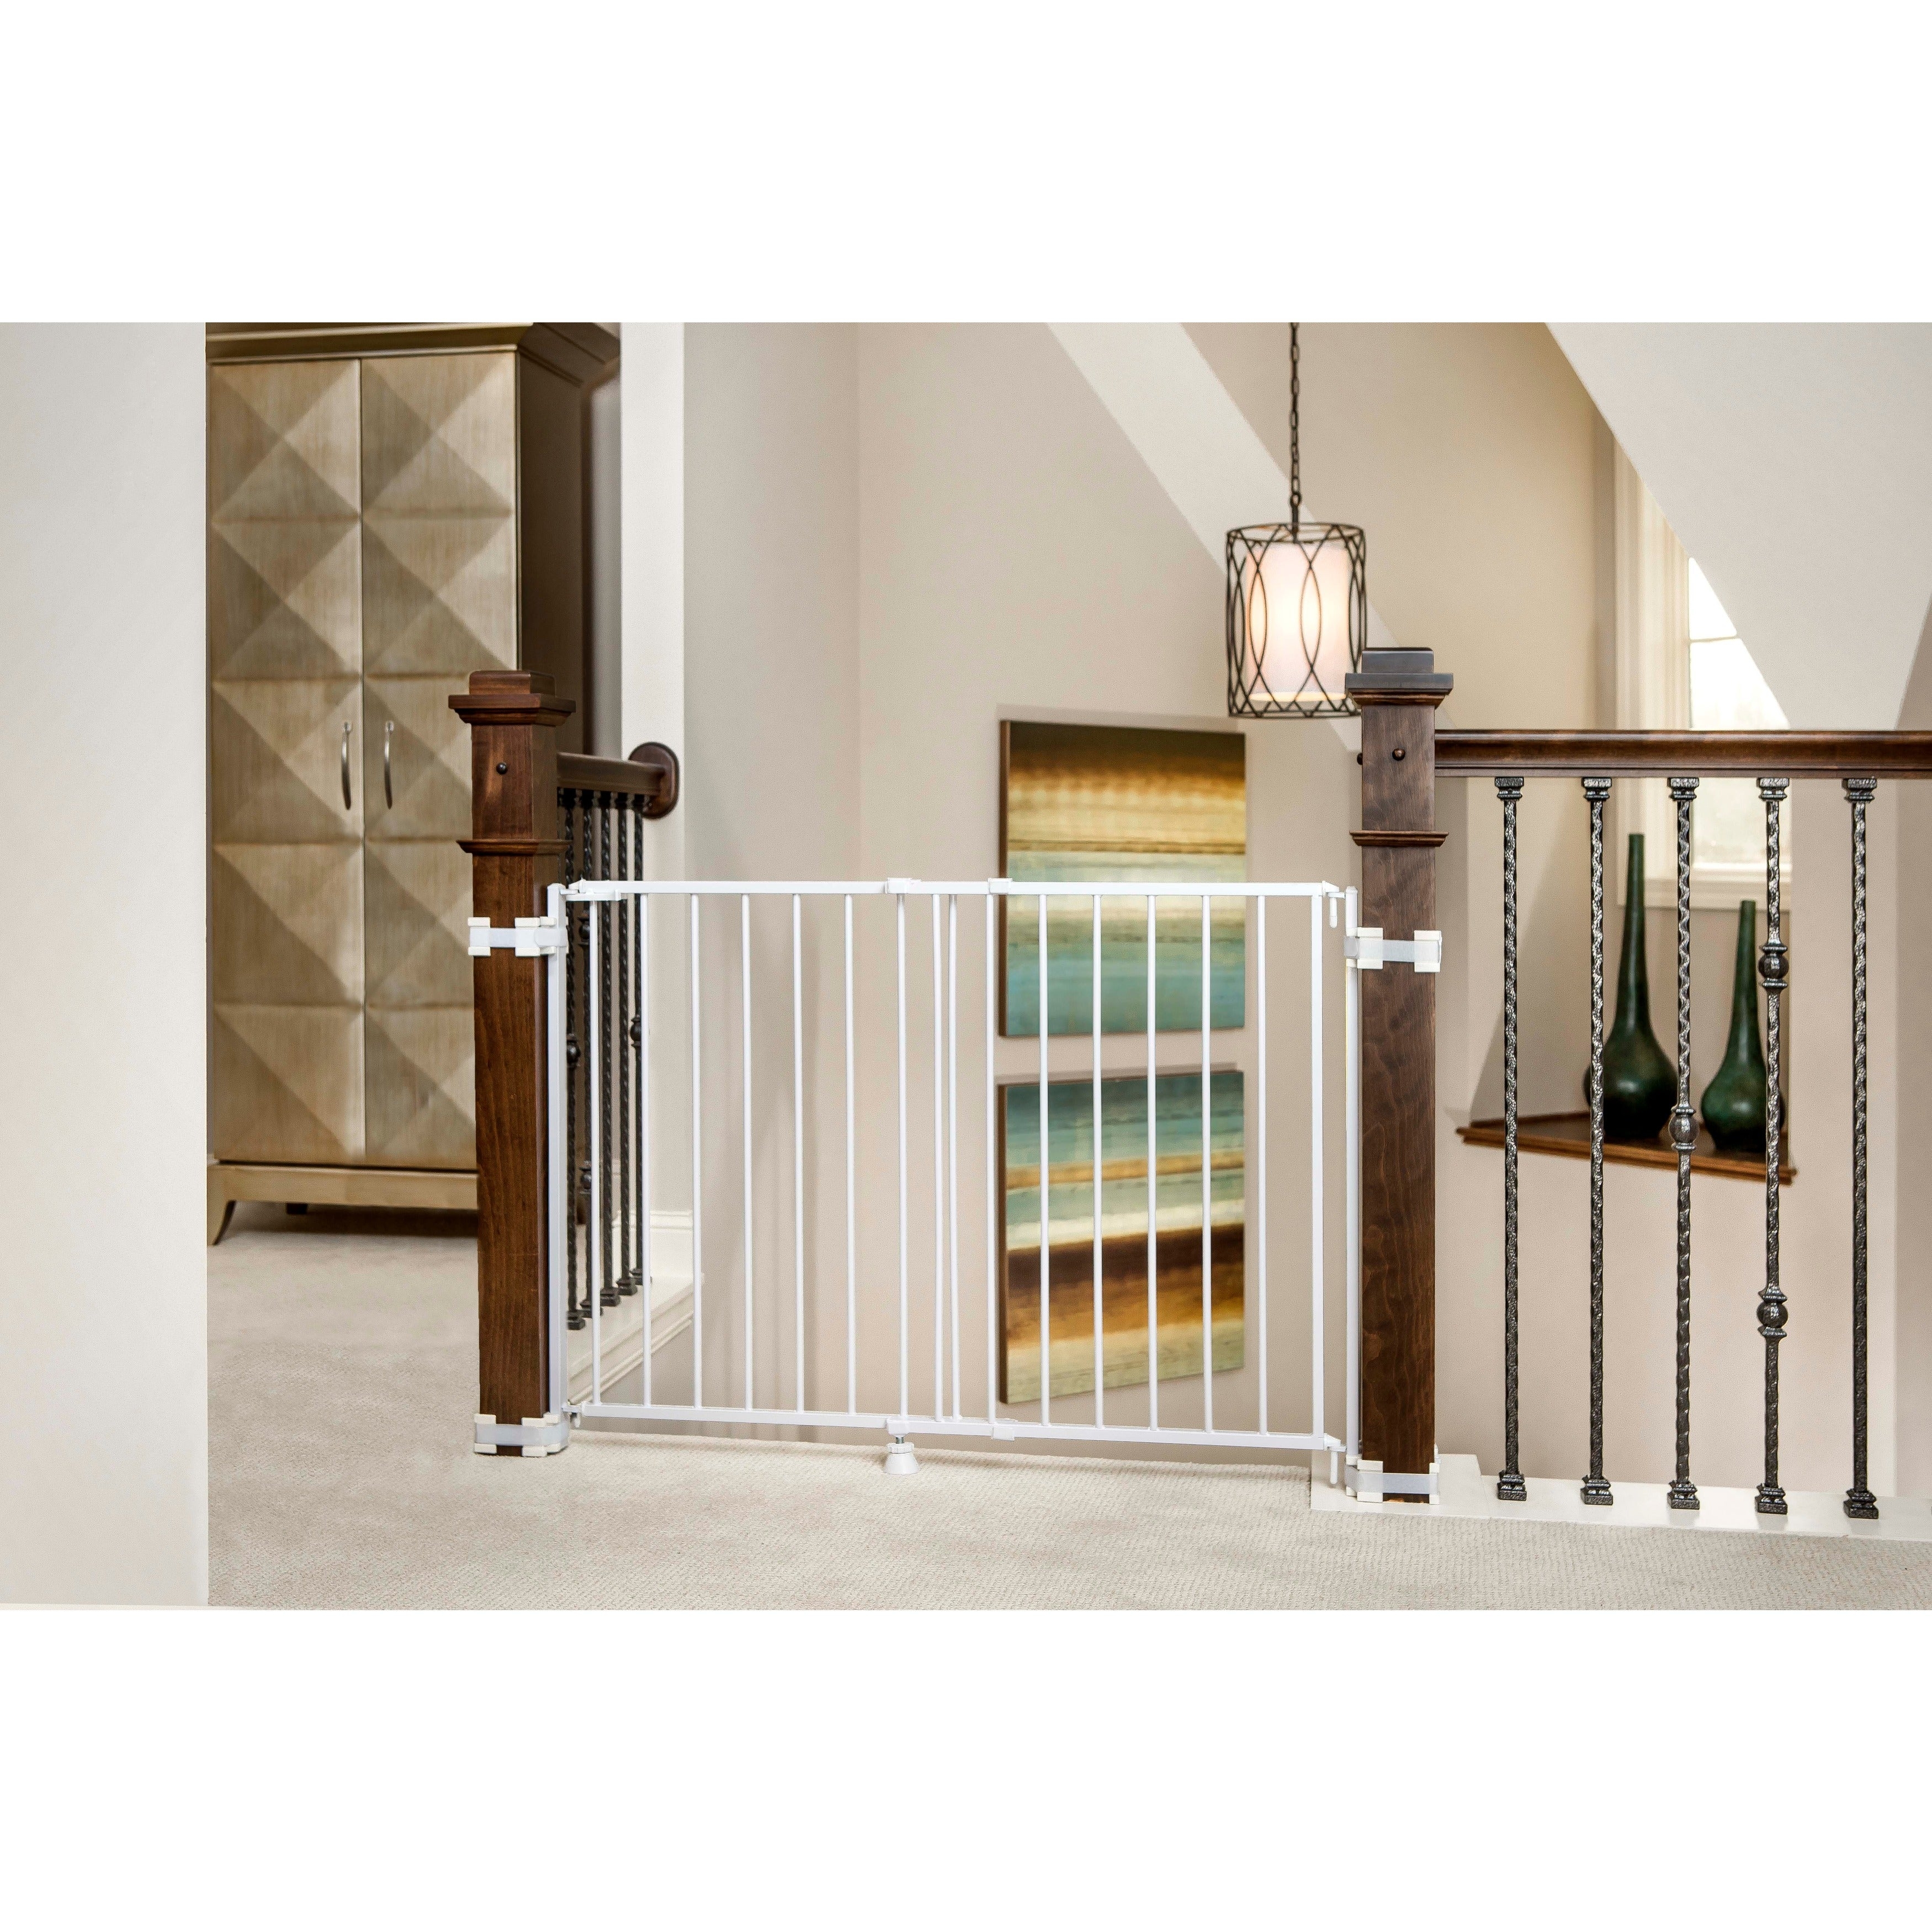 Regalo 2 In 1 Top Of Stairs Safety Gate   Free Shipping Today   Overstock    13999112